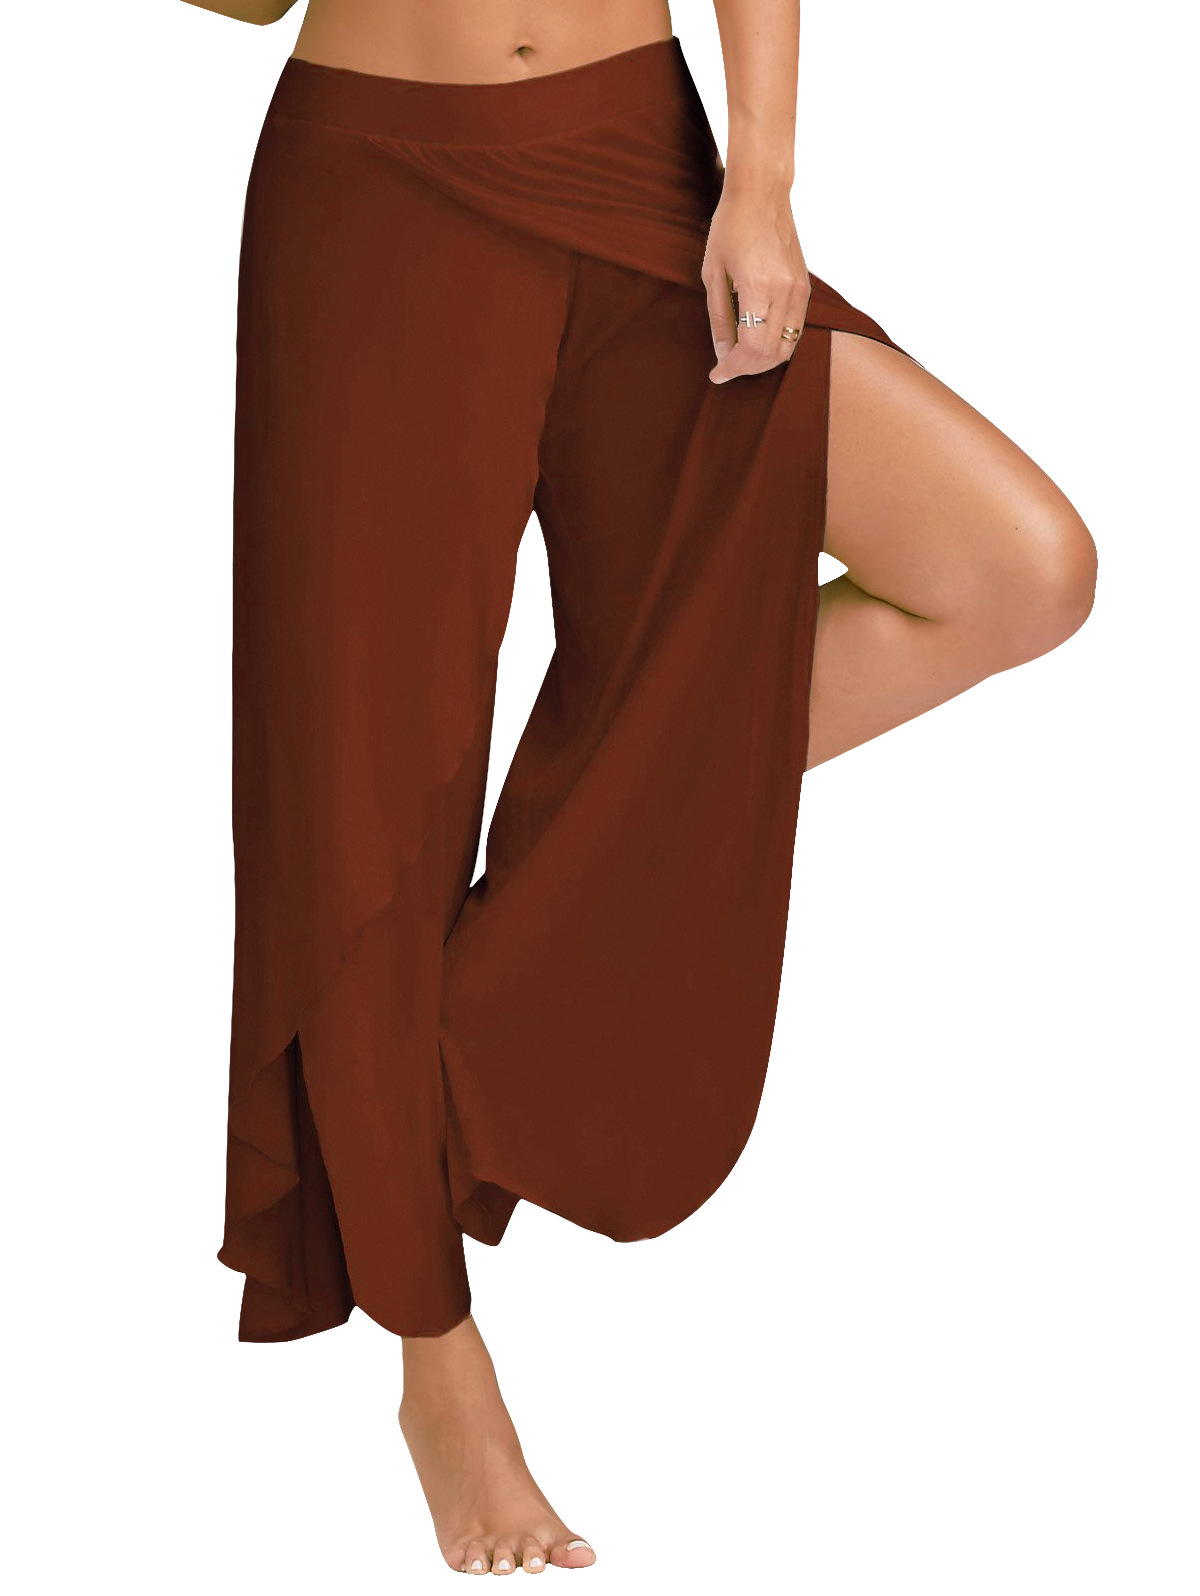 1 Piece Women High Split Trousers Female Loose Yoga Sport Wide Leg Pants coffee